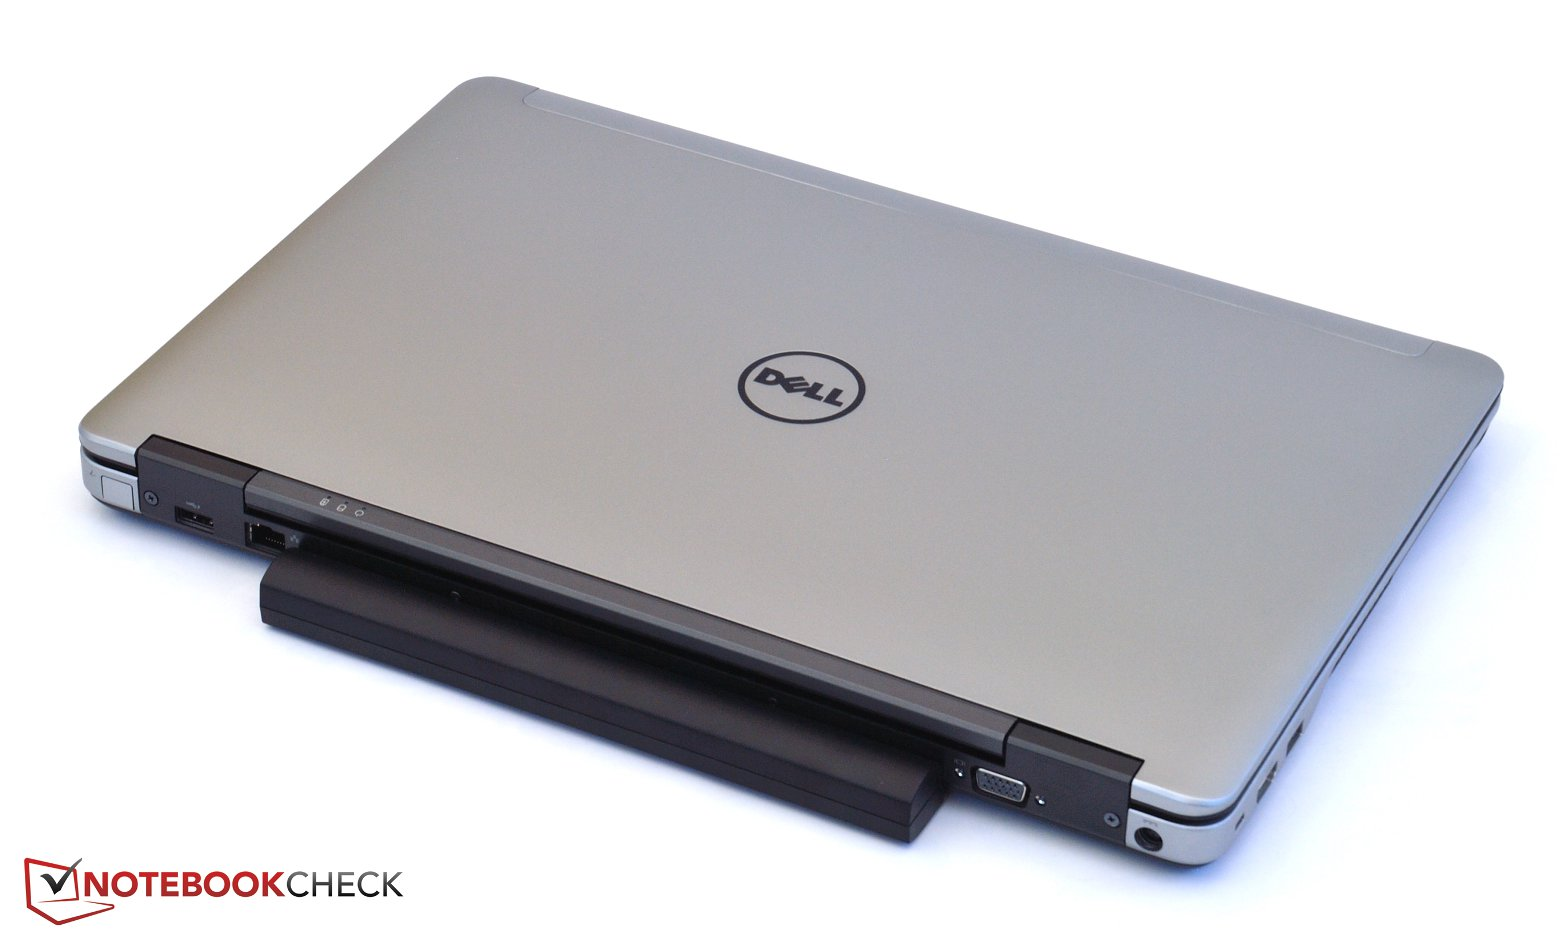 List hàng Laptop cao cấp Macbook-SONY-DELL-HP-ASUS-LENOVO-ACER-SAMSUNG ship từ USA - 27